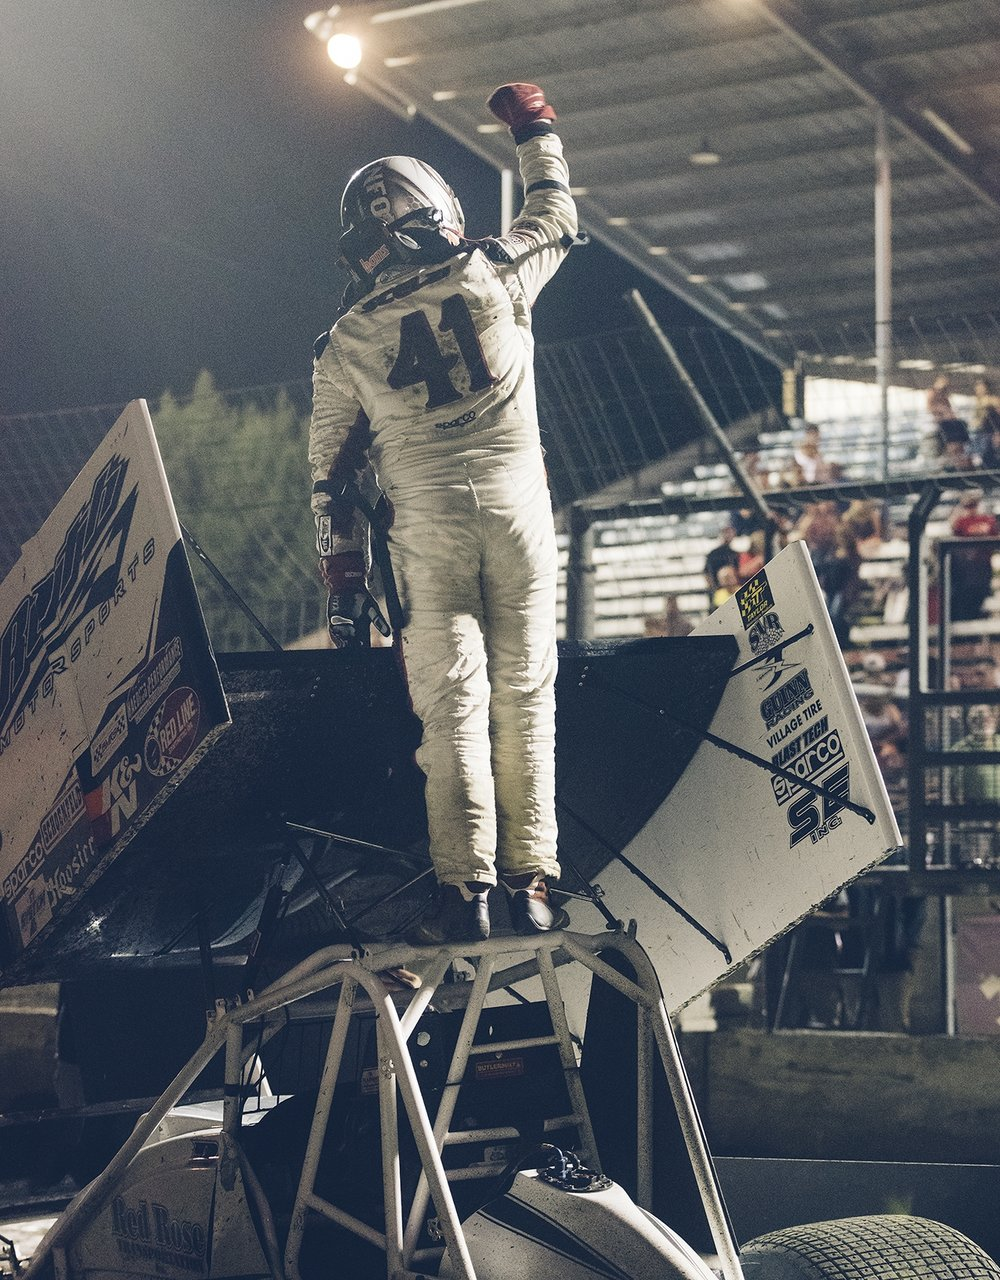 Comeback complete: Dominic is victorious at Hanford after returning to action from a back injury he sustained at Tulare in 2015.